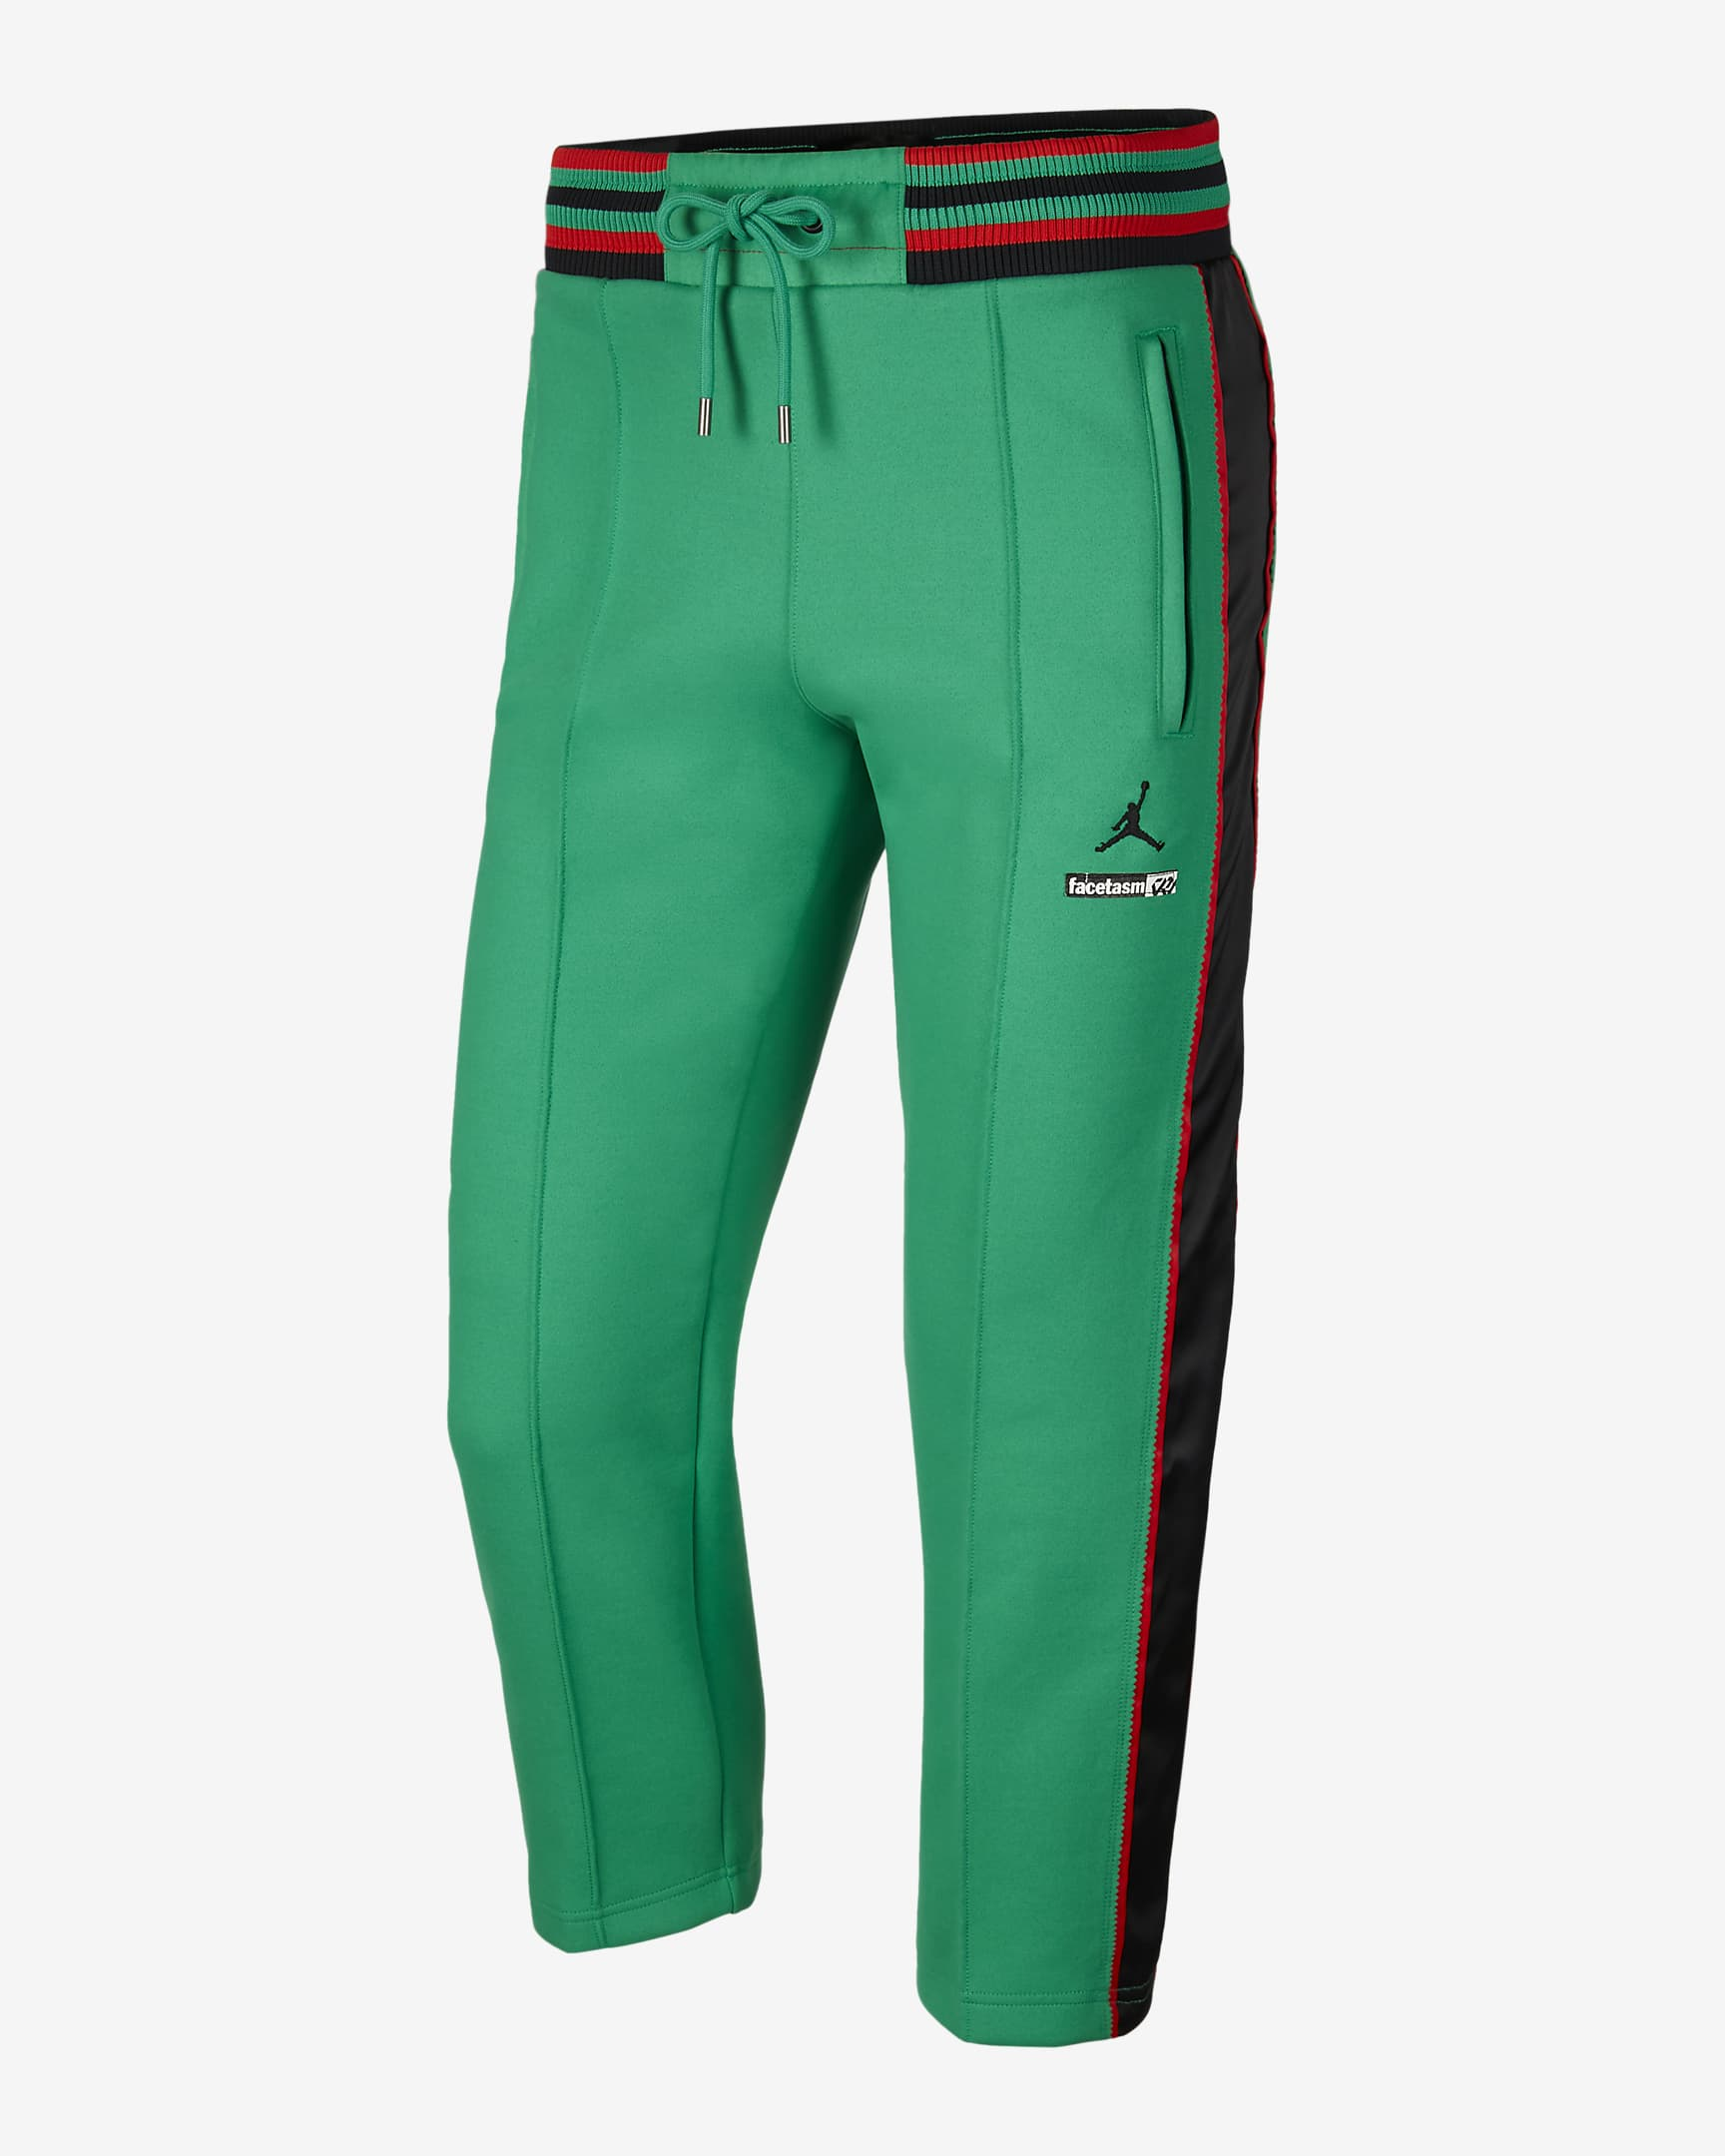 jordan-why-not-x-facetasm-mens-track-pants-lnL7tj